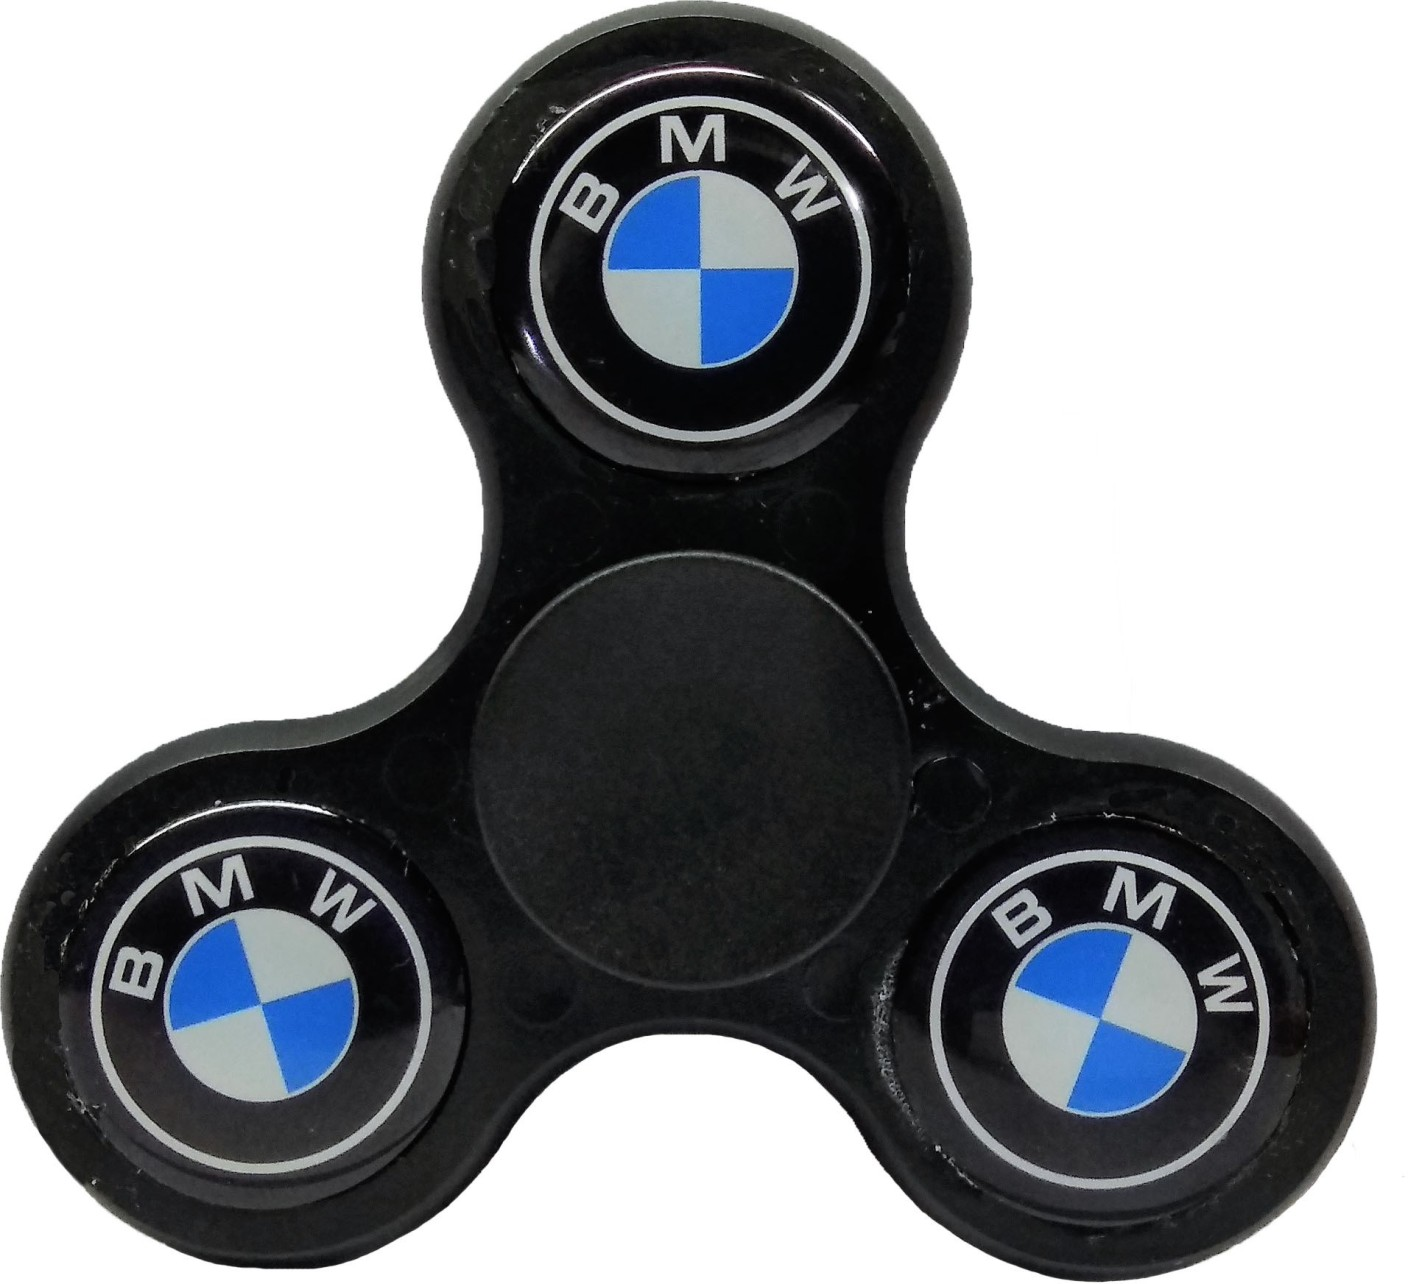 darling toys bmw logo fidget hand spinner anti stress toy. Black Bedroom Furniture Sets. Home Design Ideas